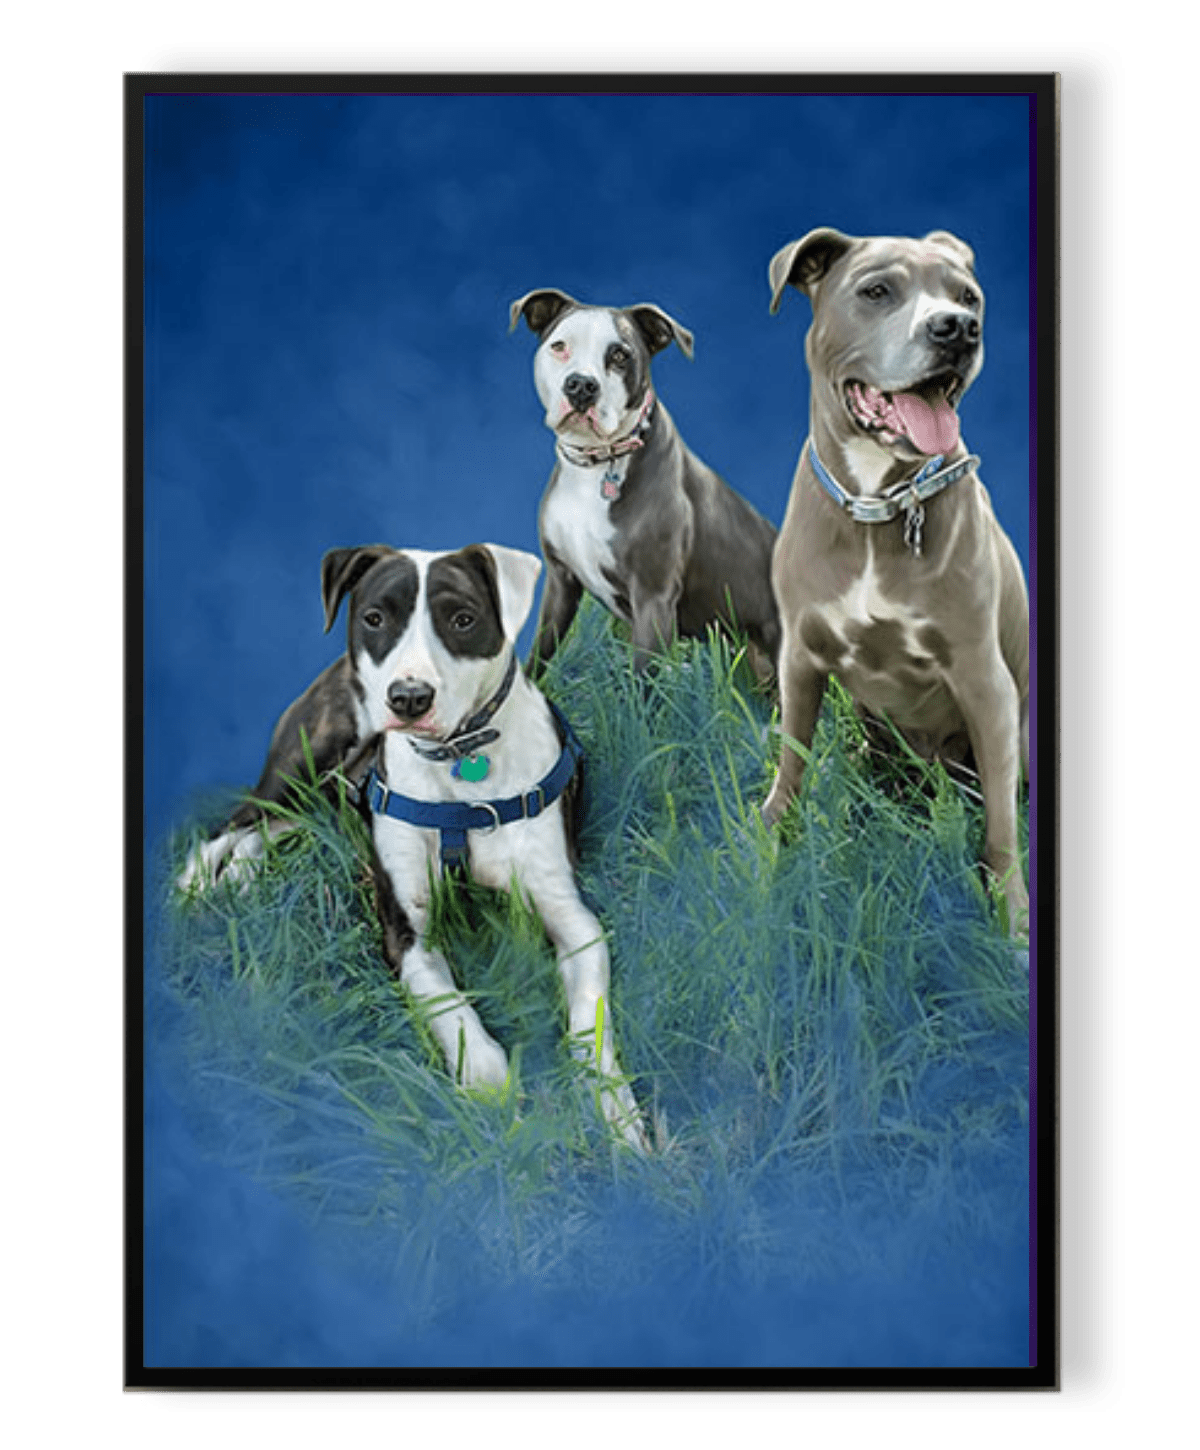 Three dogs on inside a frame with blue background